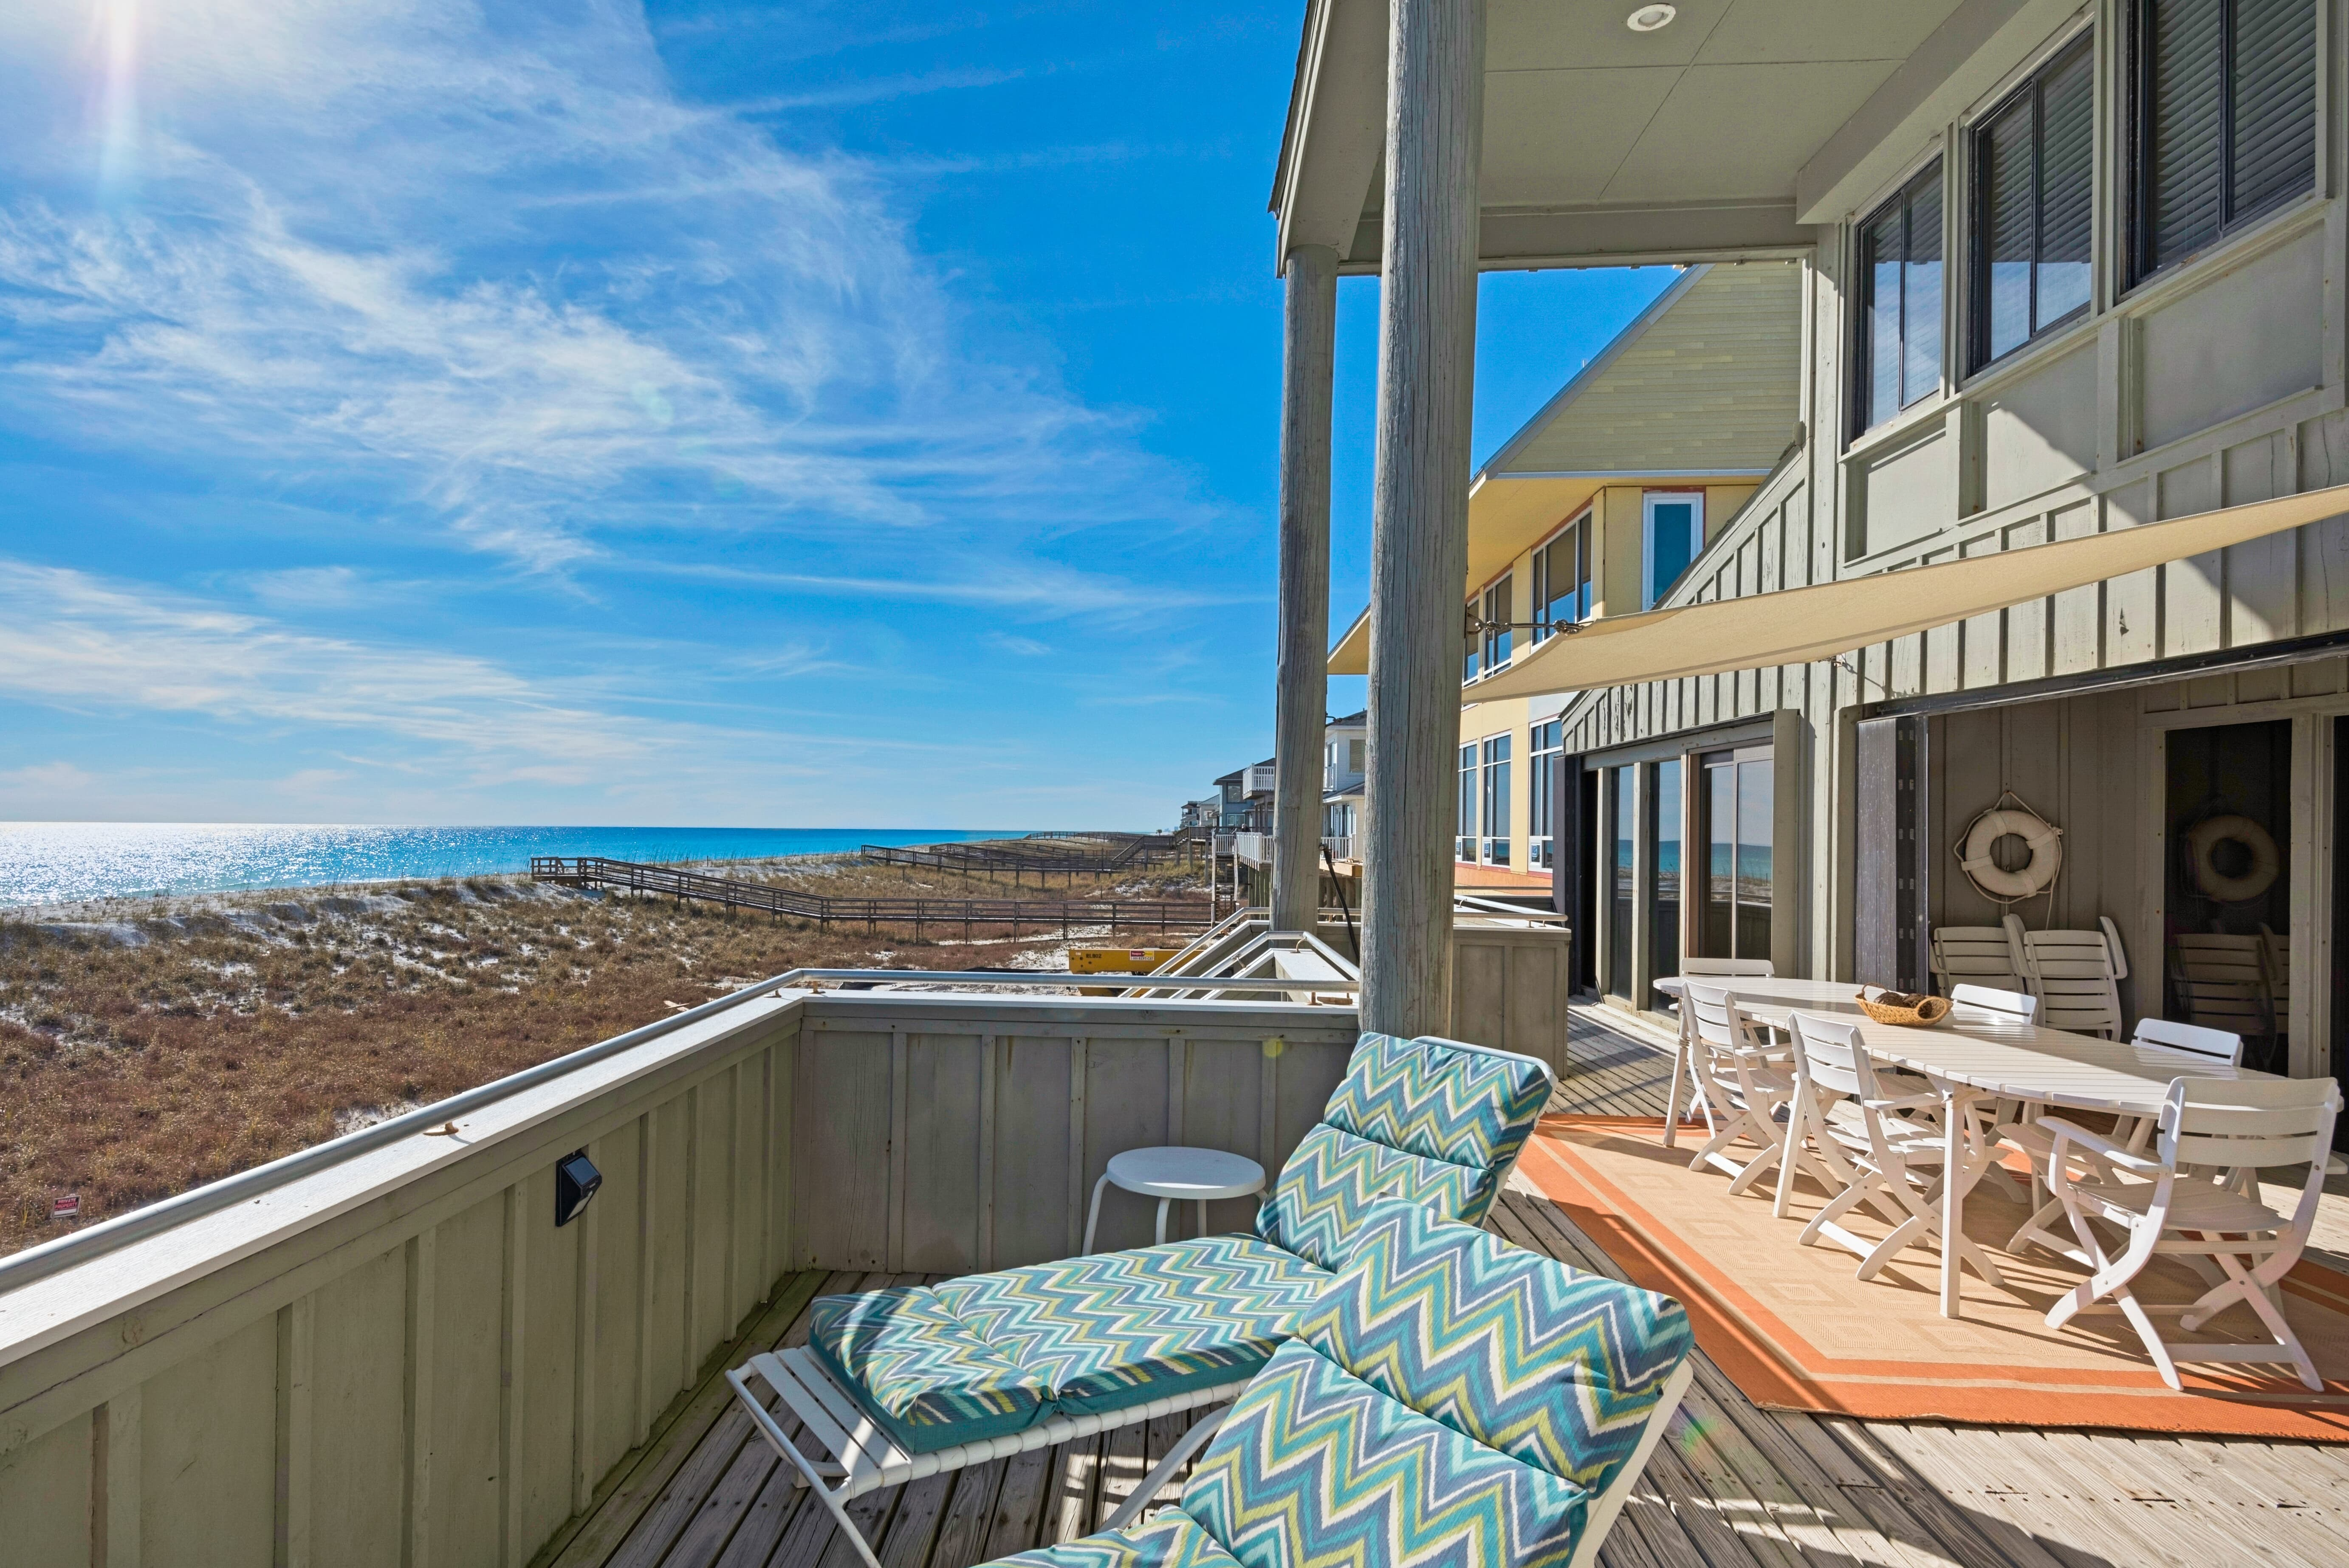 7527 Gulf Blvd - The Oyster House/Cottage rental in Navarre Beach House Rentals in Navarre Florida - #68